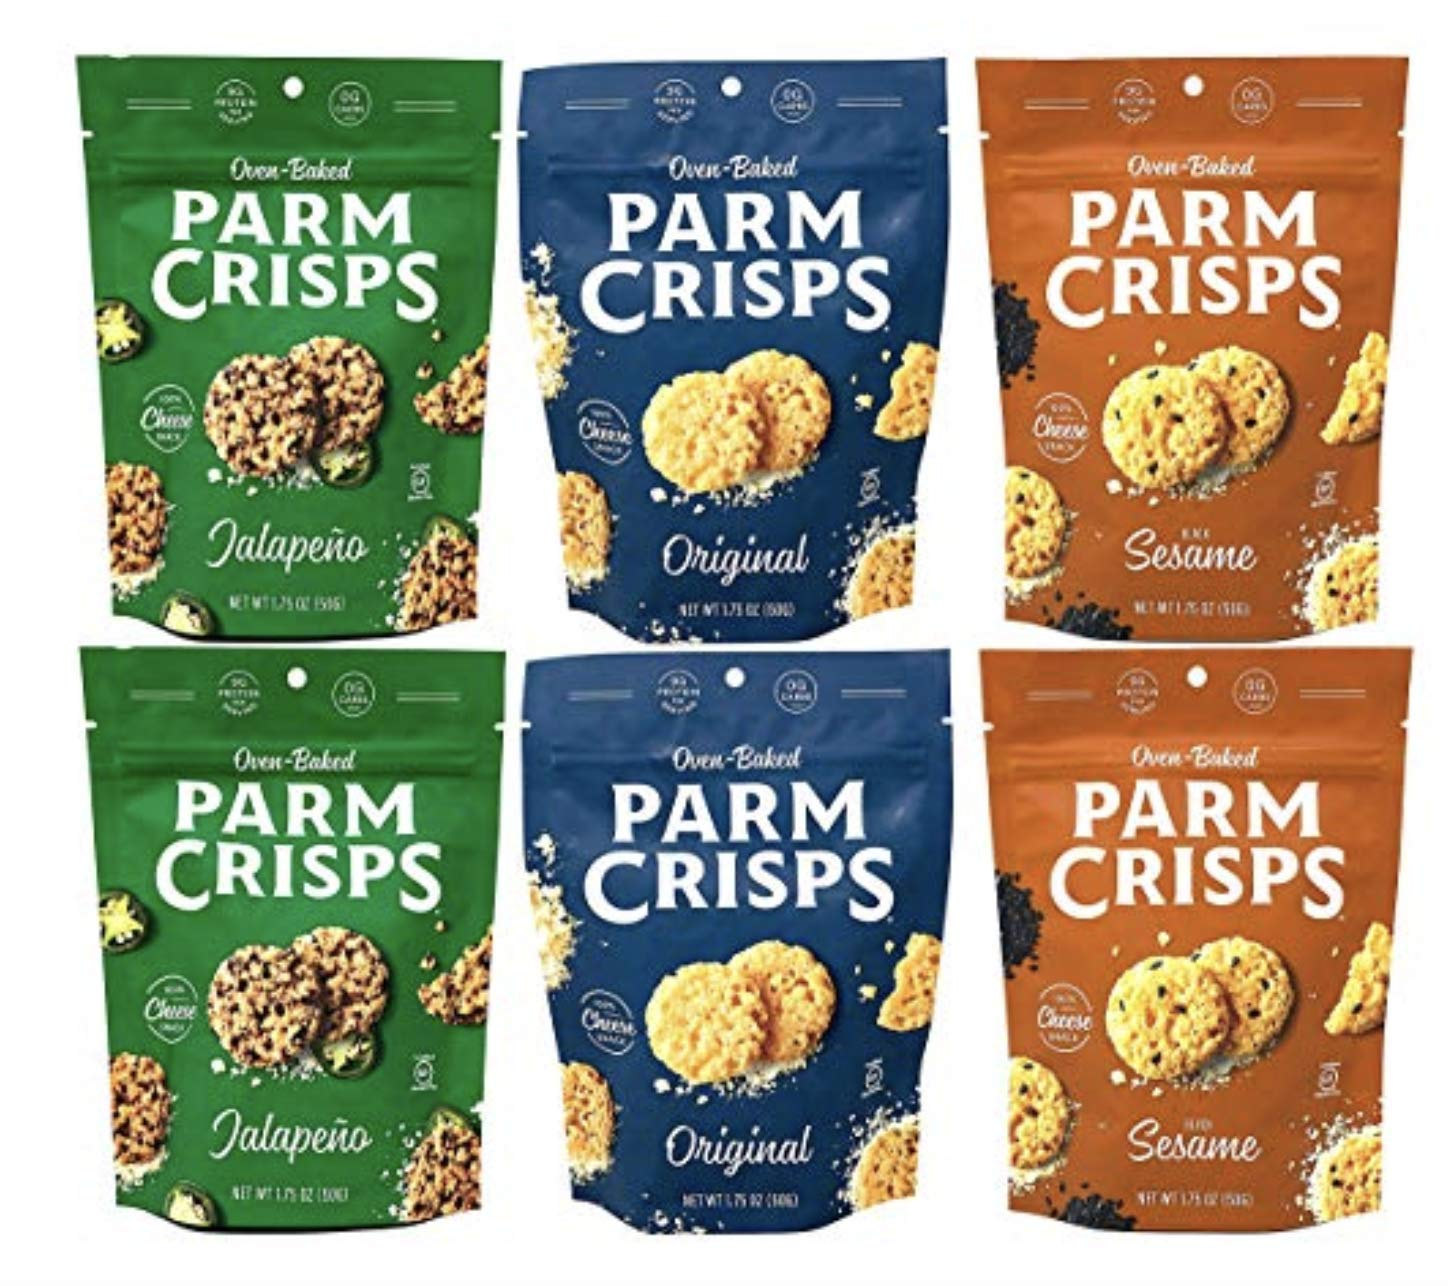 ParmCrisps, Made From 100% Real Parmesan Cheese, Gluten Free, Sugar Free, Keto Friendly, 3 Flavor Variety Pack, 1.75oz Bags (Pack of 6)